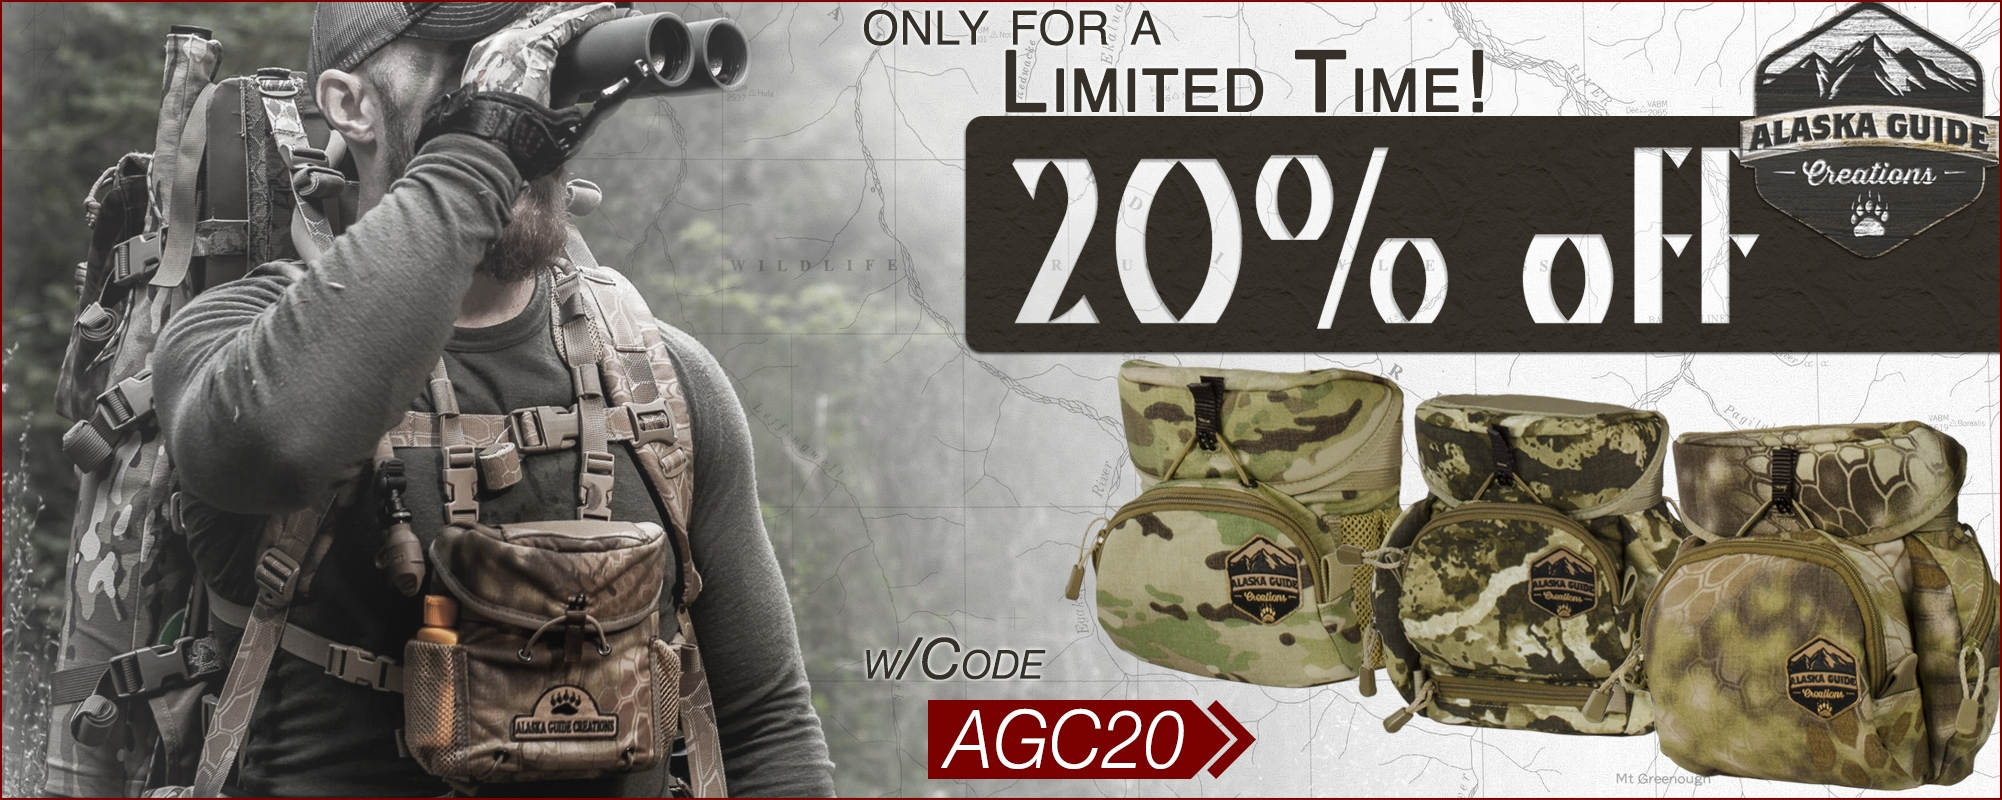 Save on AGC